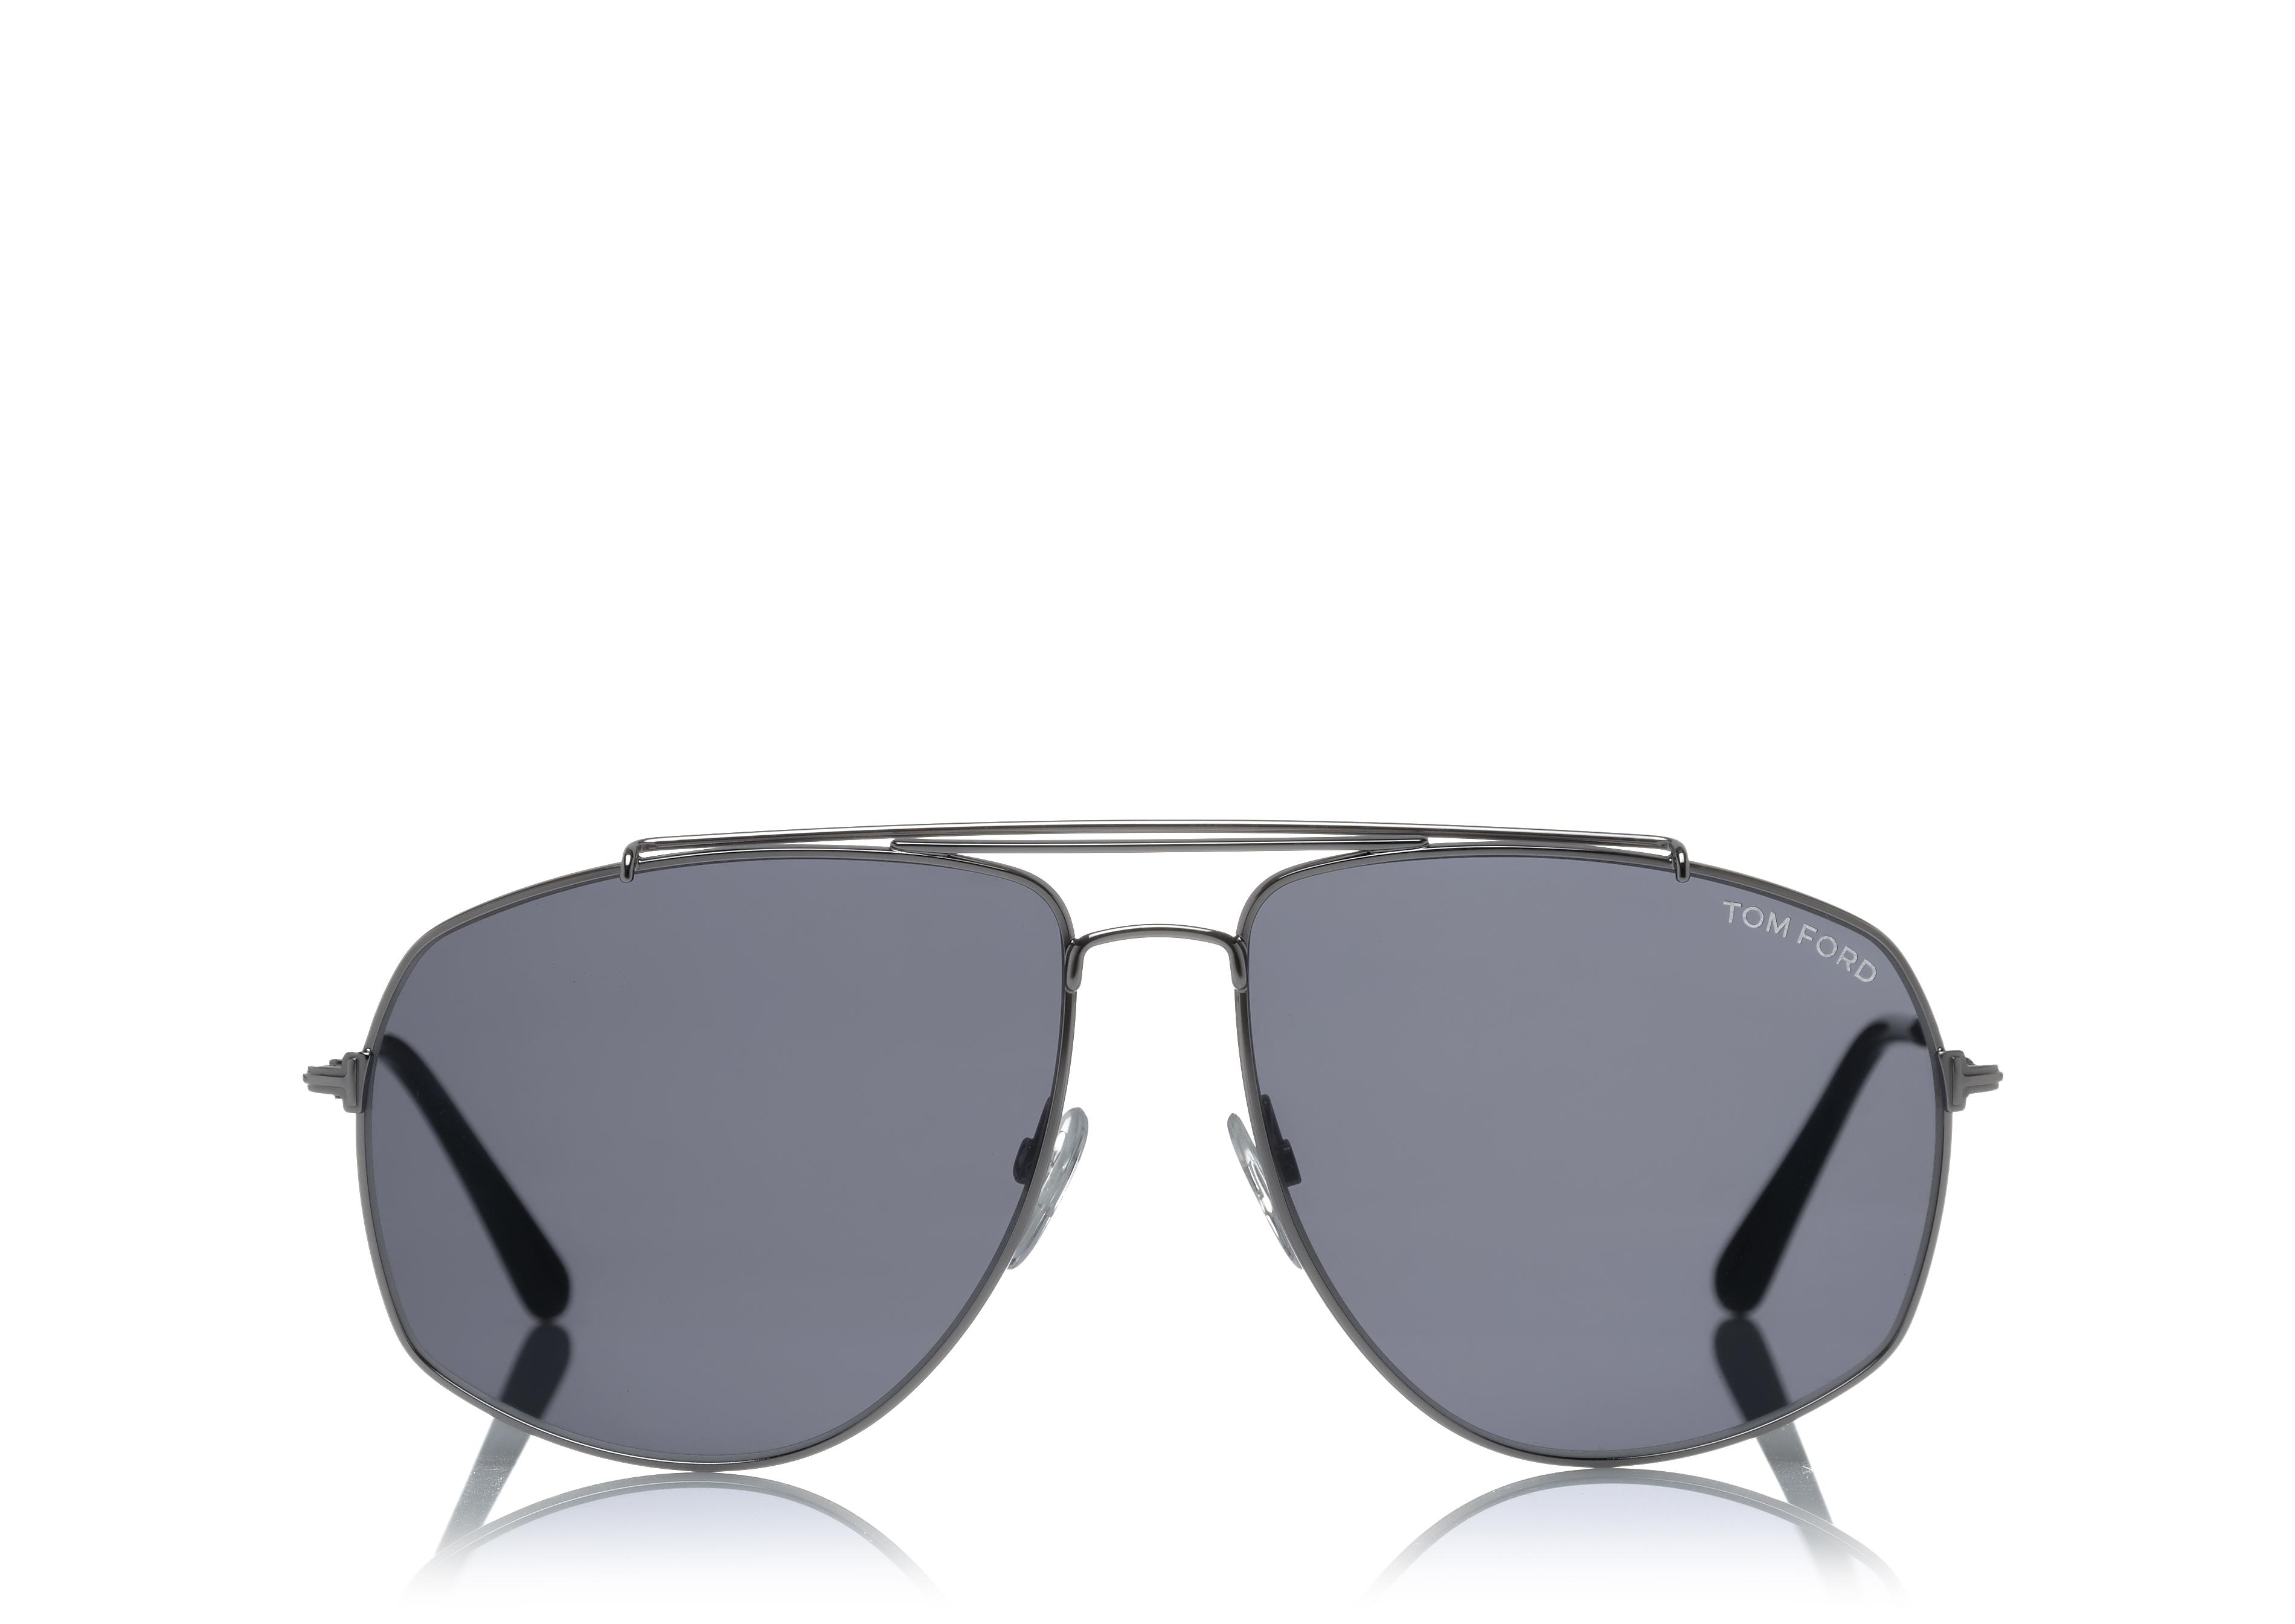 GEORGES SUNGLASSES A thumbnail